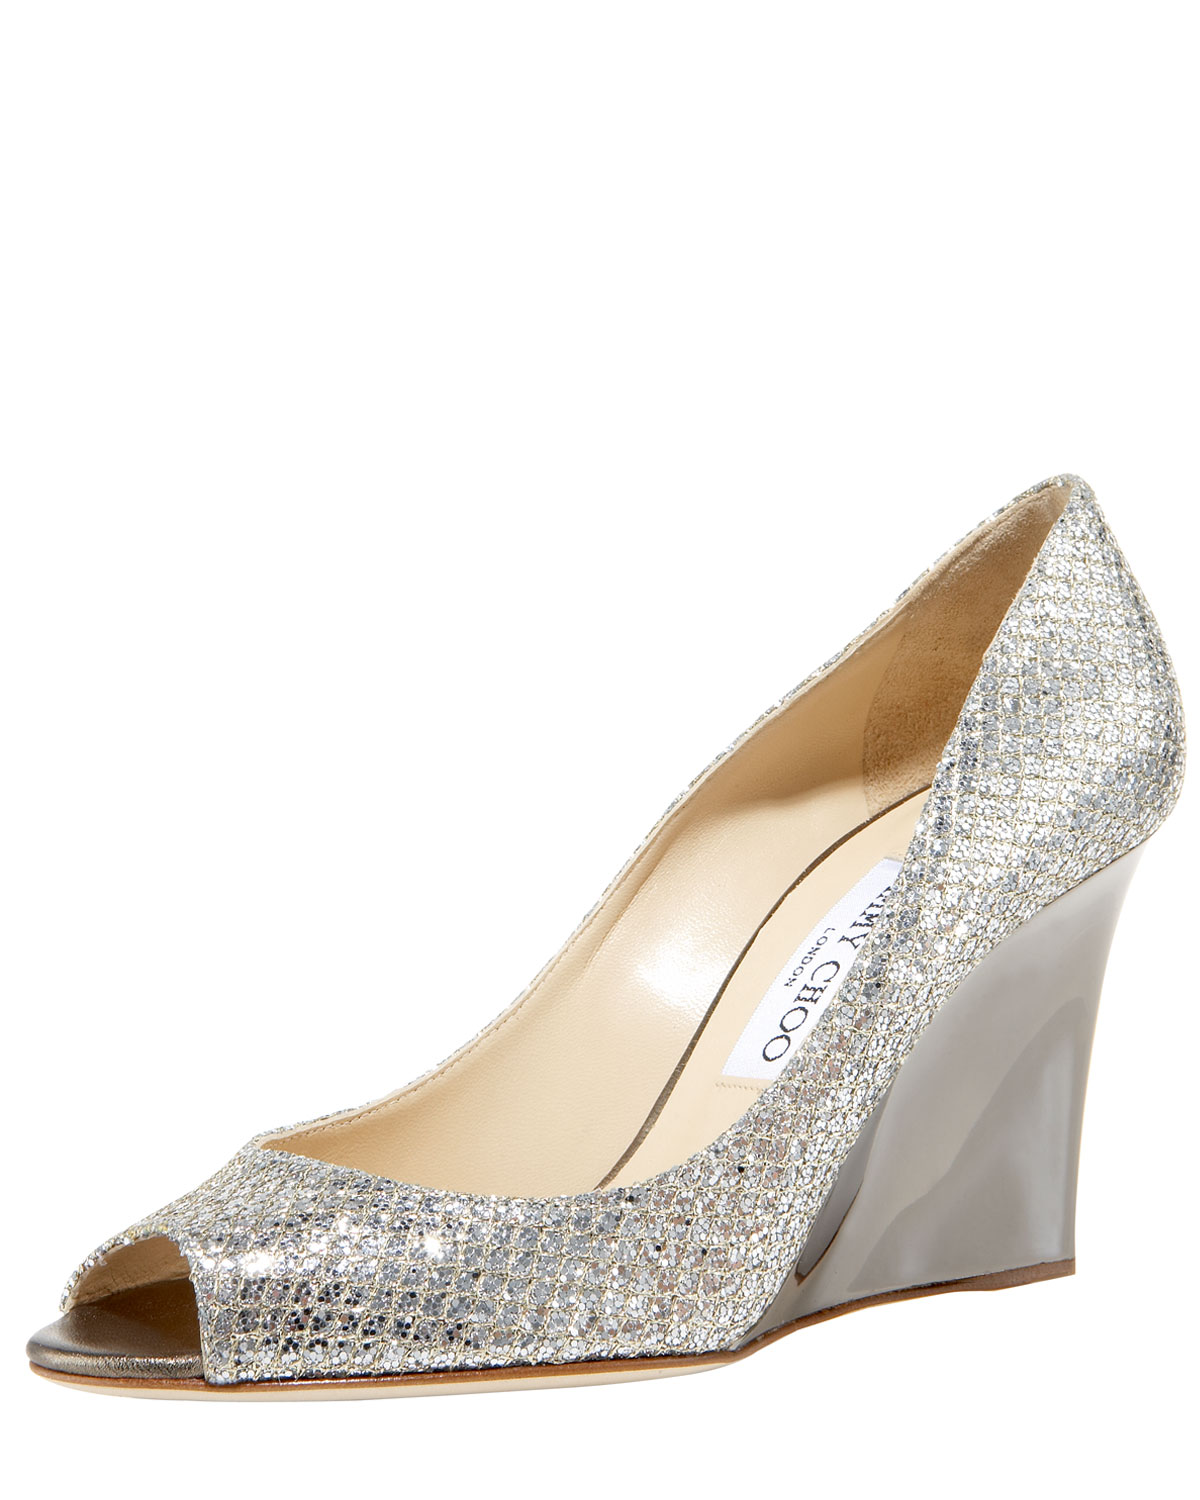 ff4642b1b14 Jimmy Choo Baxen Glittered Wedge Pump